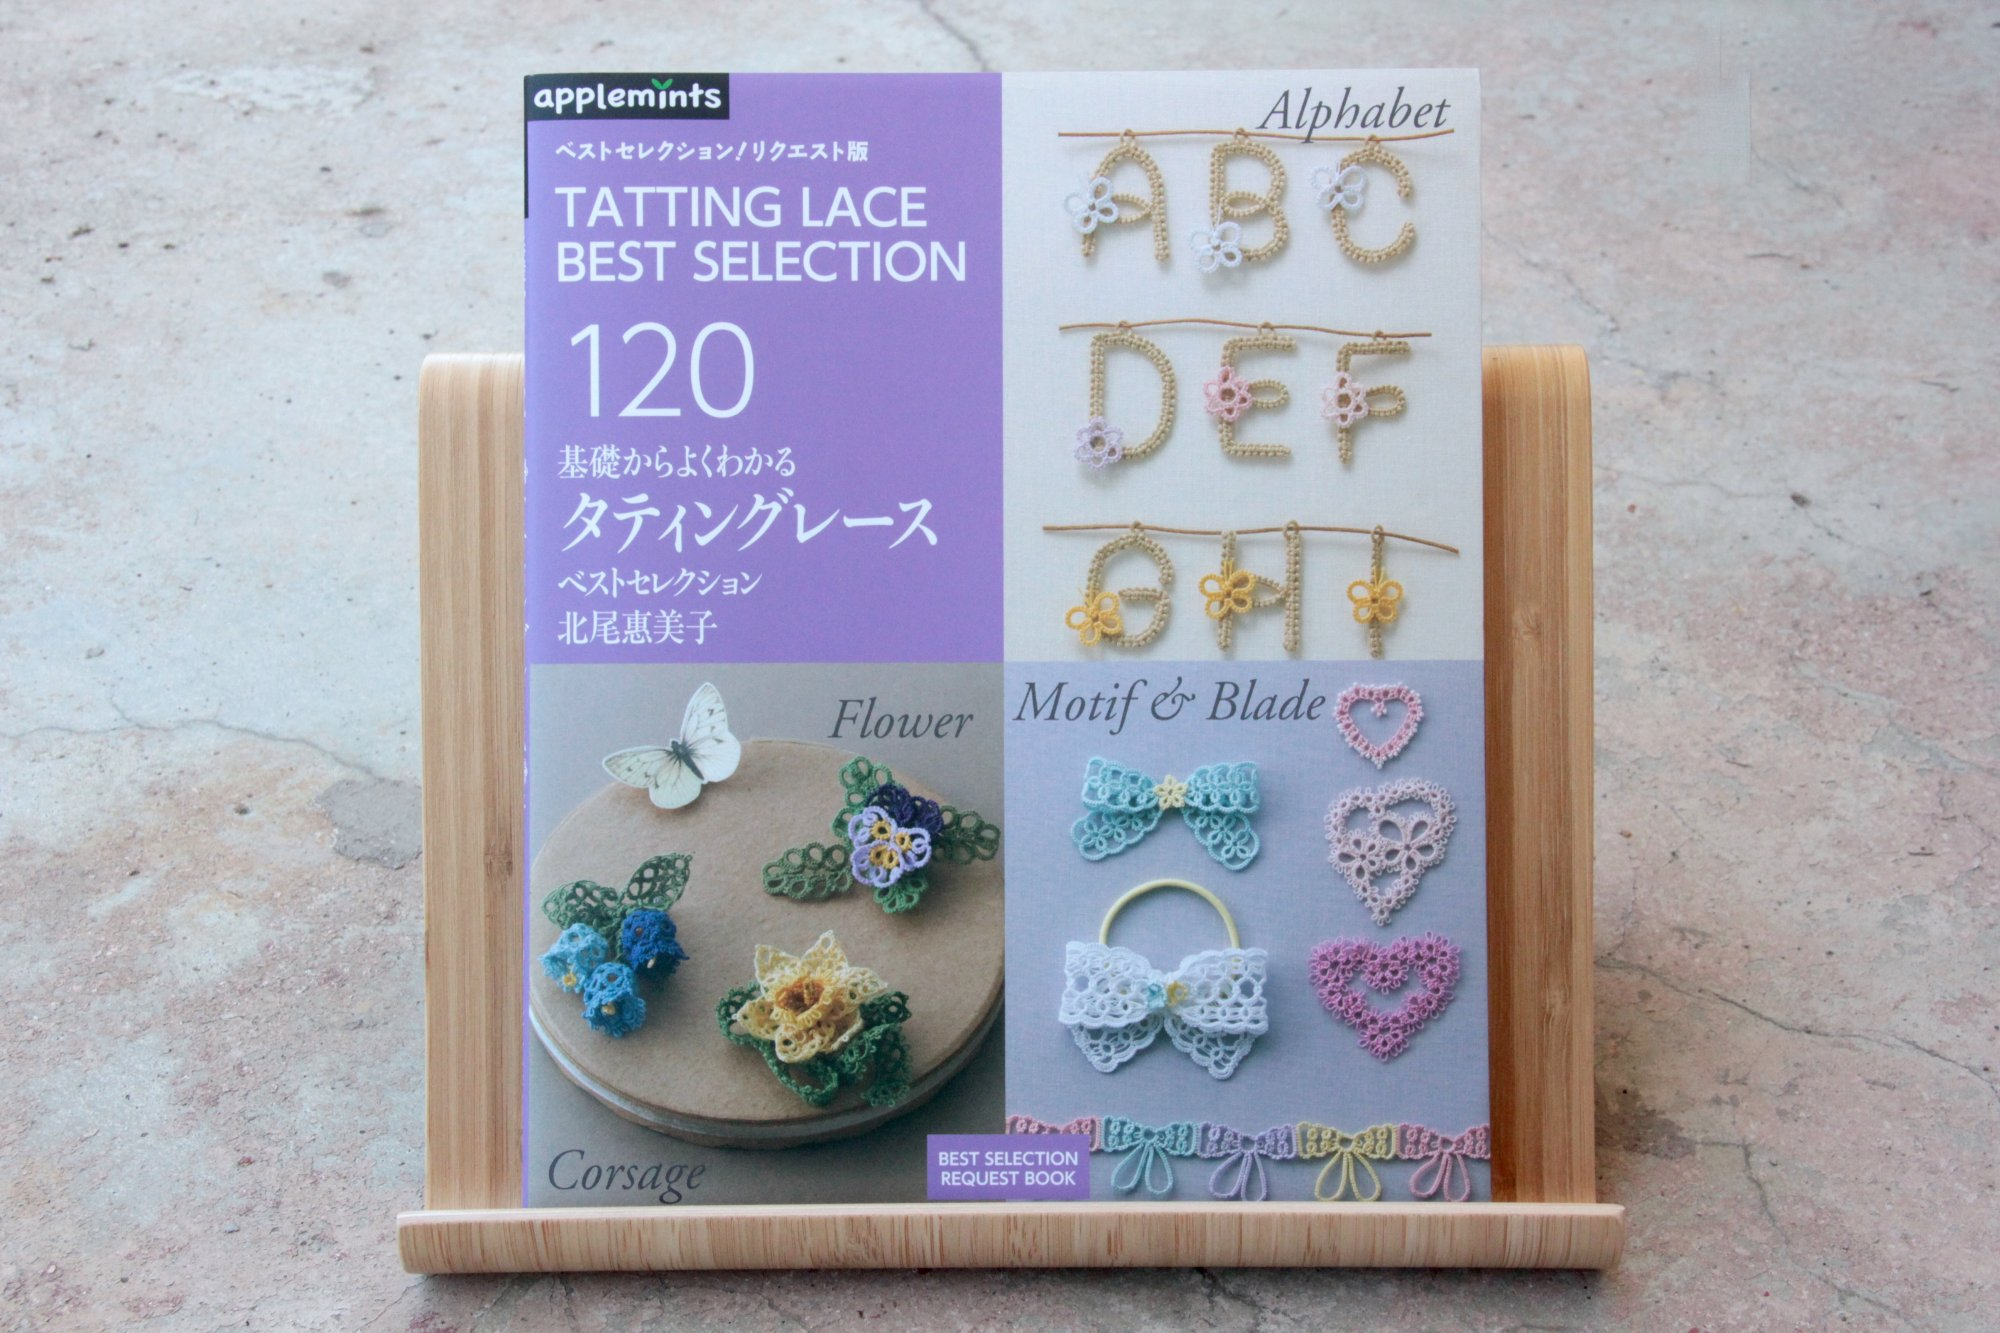 Tatting Lace Best Selection (Japanese)